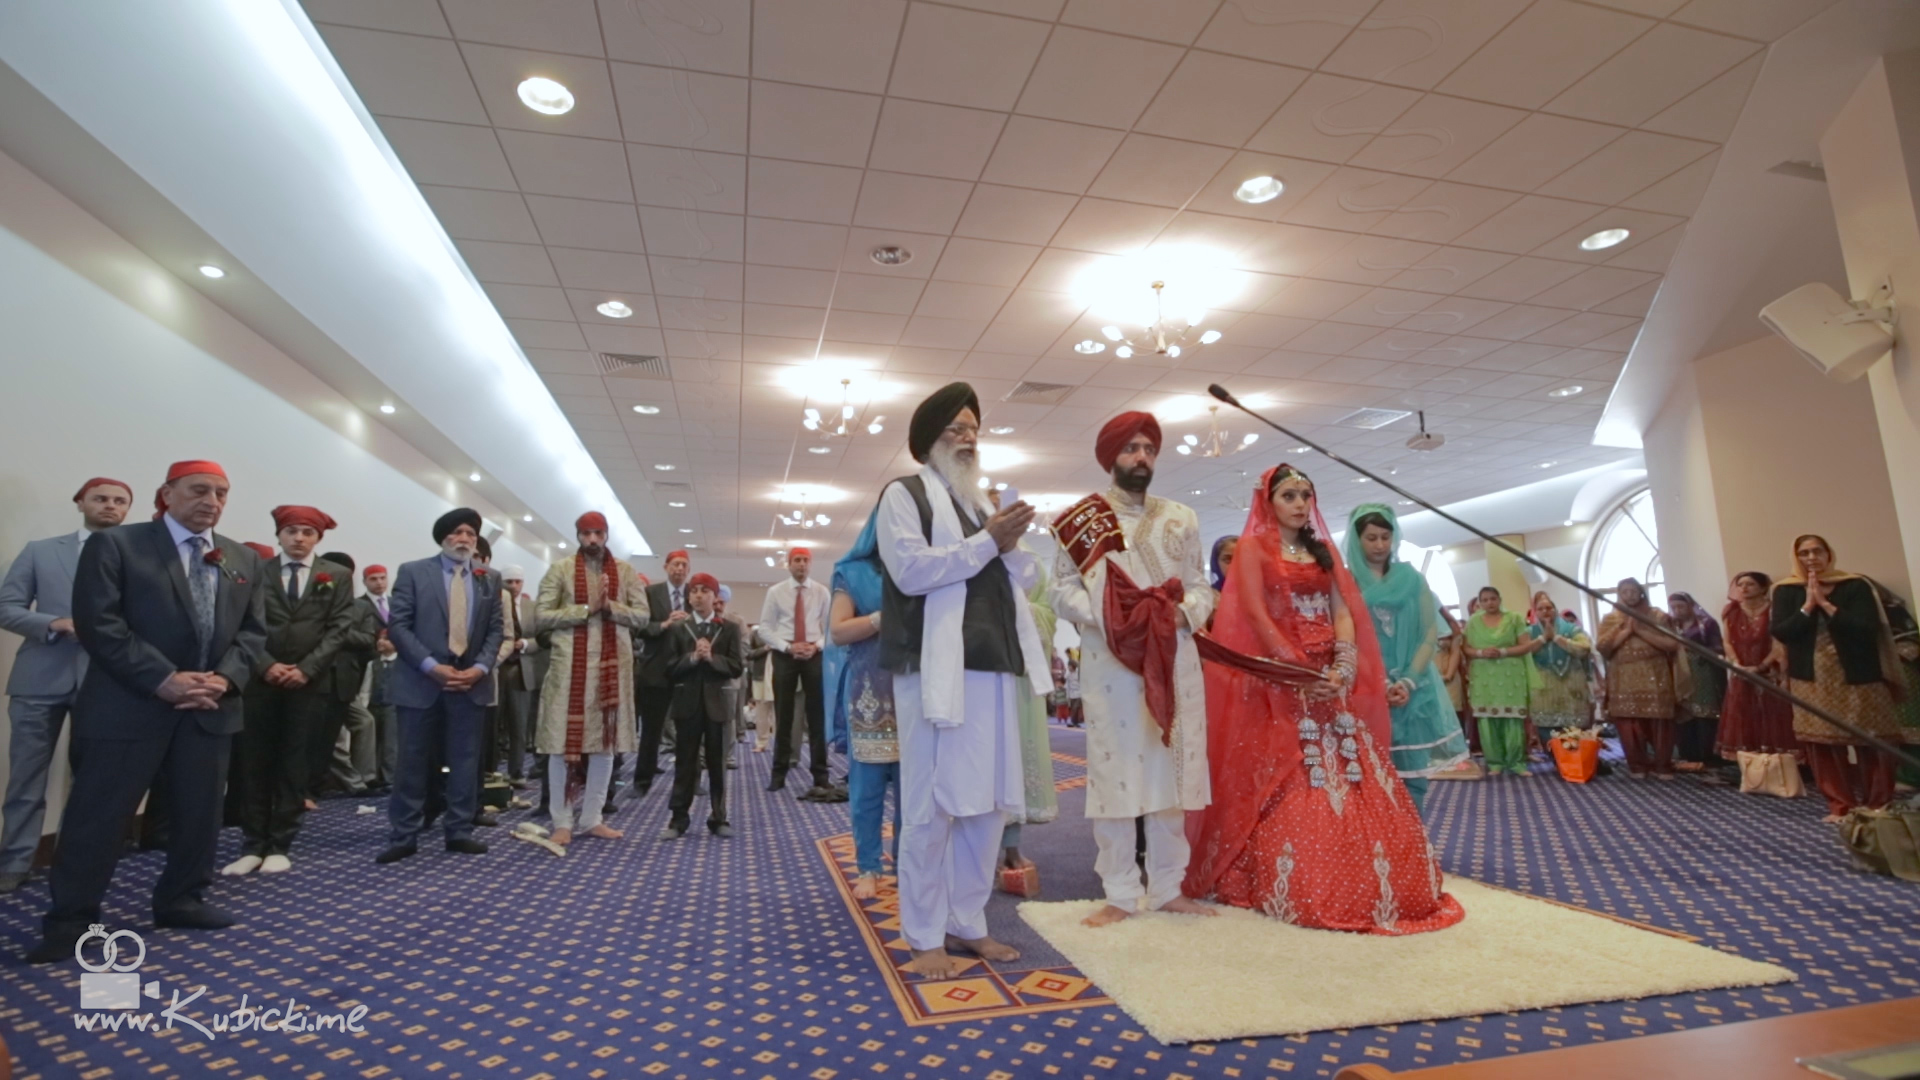 Sikh Weddings In Leamington Spa